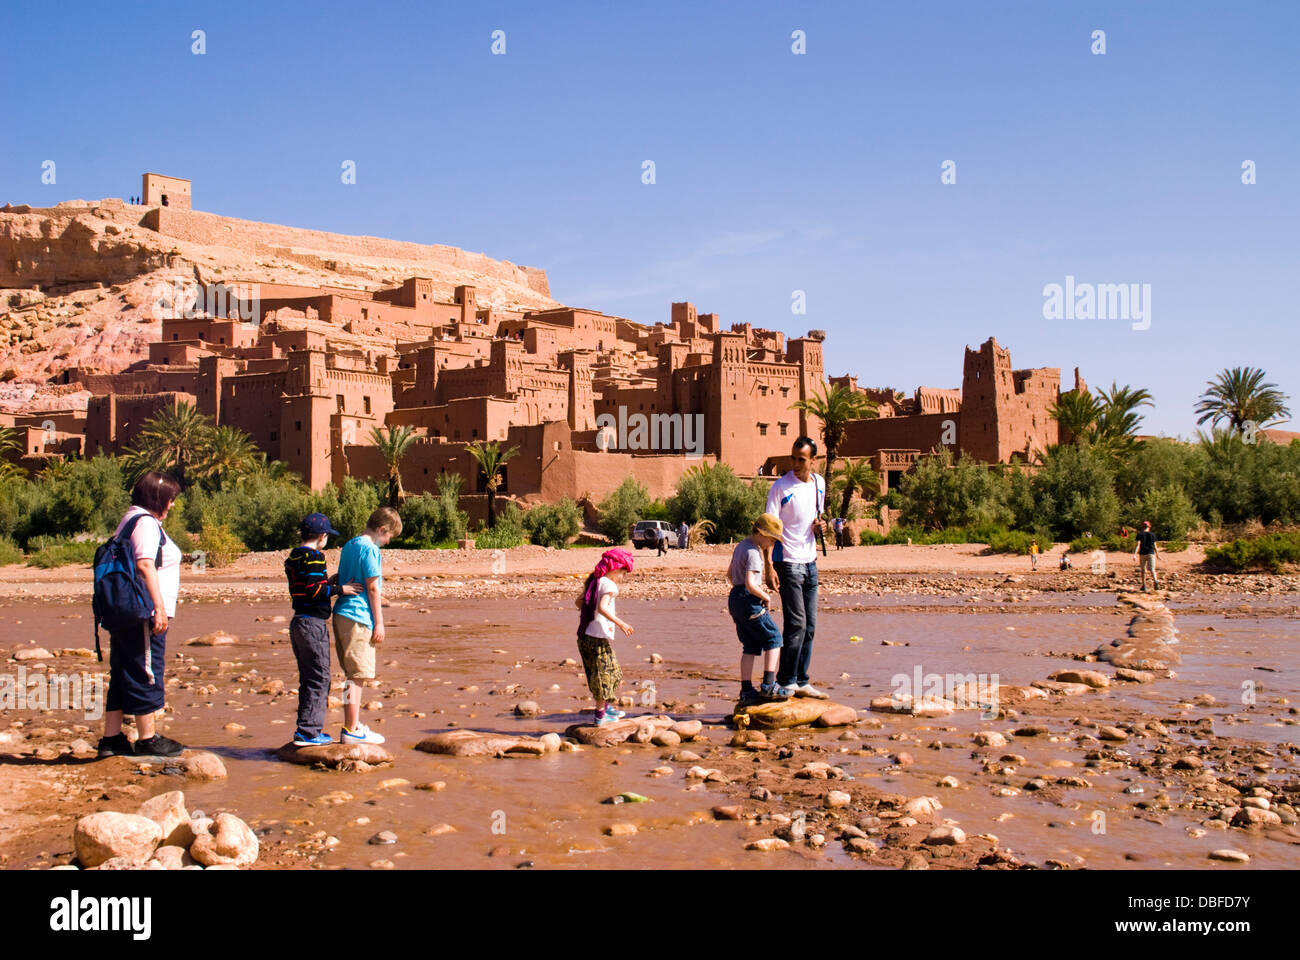 Aït Benhaddou in Berber Ath Benhadu . Young tourists cross the Ounila River Most of the town's inhabitants - Stock Image